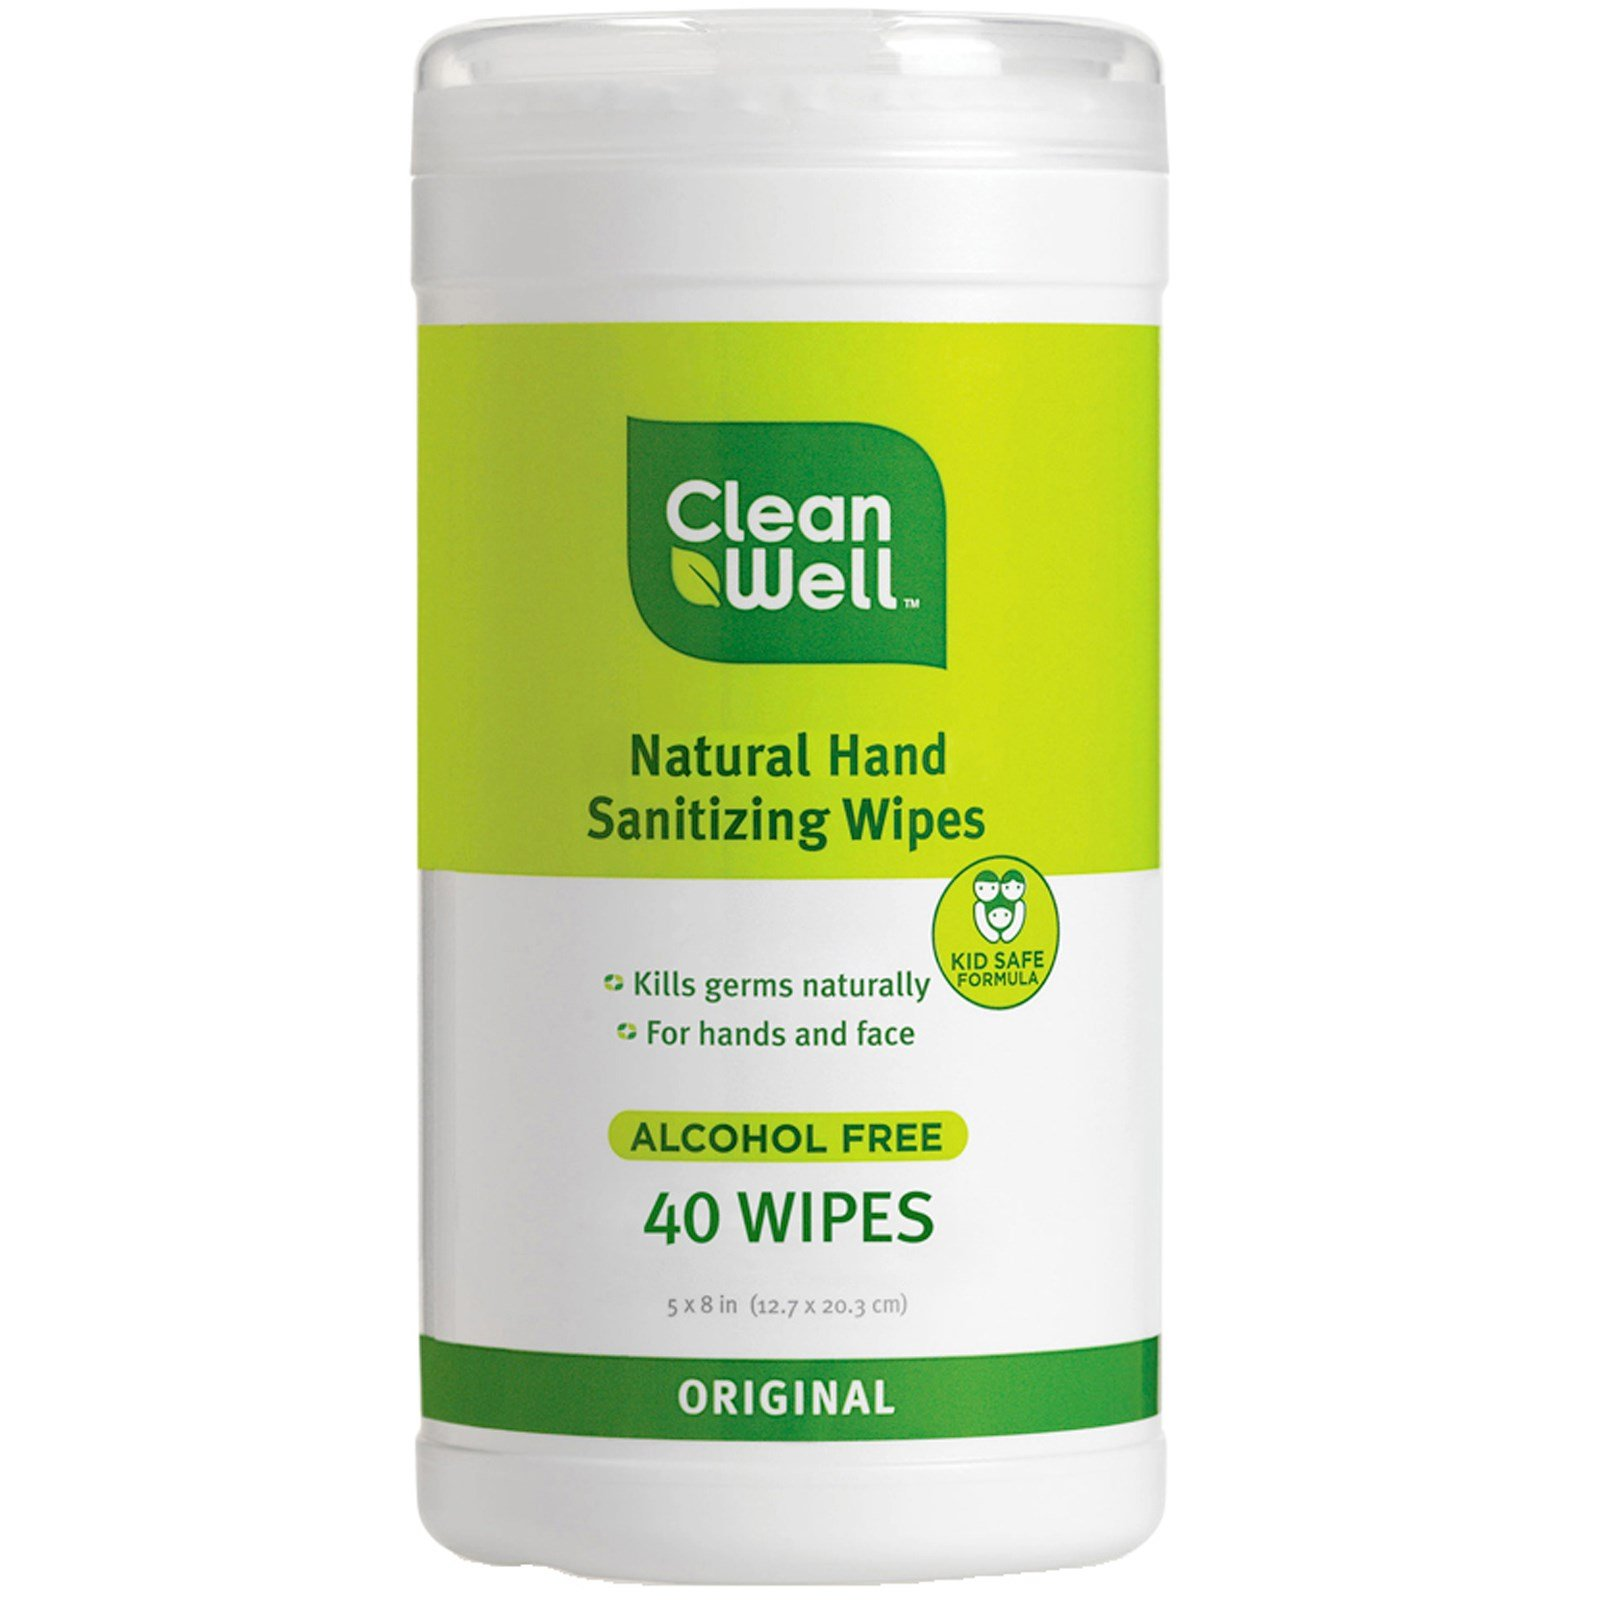 Clean Well, All-Natural Hand Sanitizing Wipes, Alcohol Free, Original, 40 Wipes, 5 x 8 in (12.7 x 20.3 cm) Each - 2pc